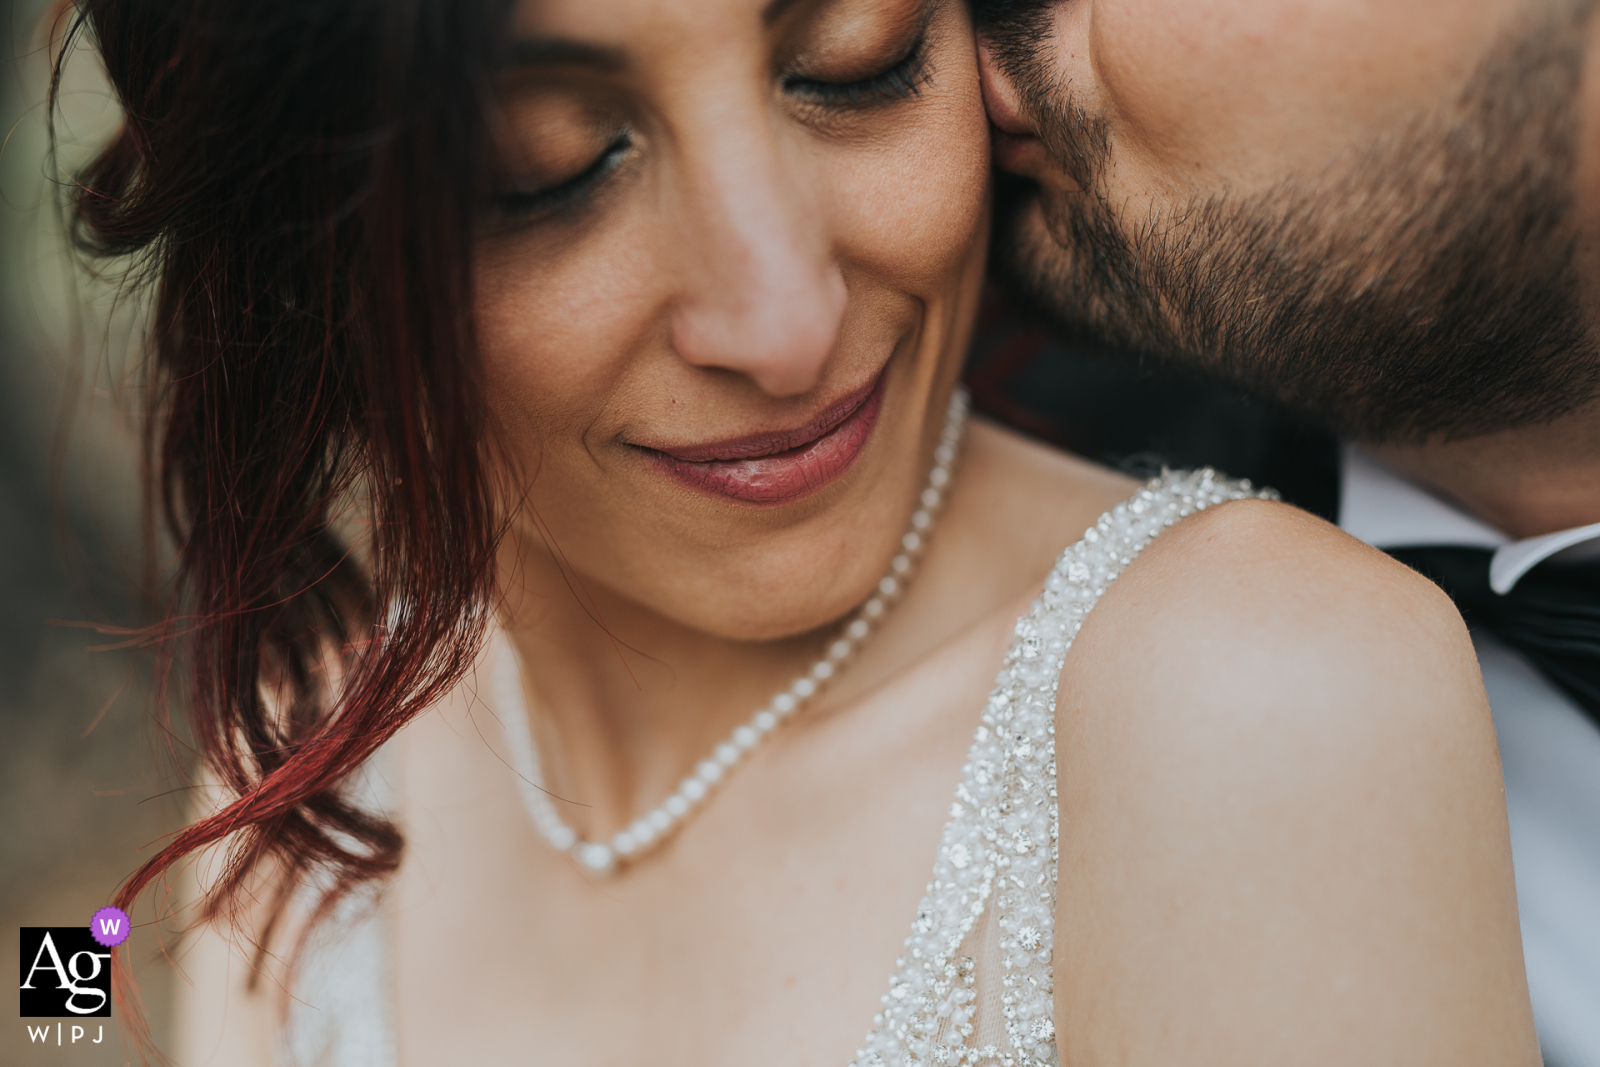 Taranto wedding photo from the Apulia Reception Venue with tenderness between spouses